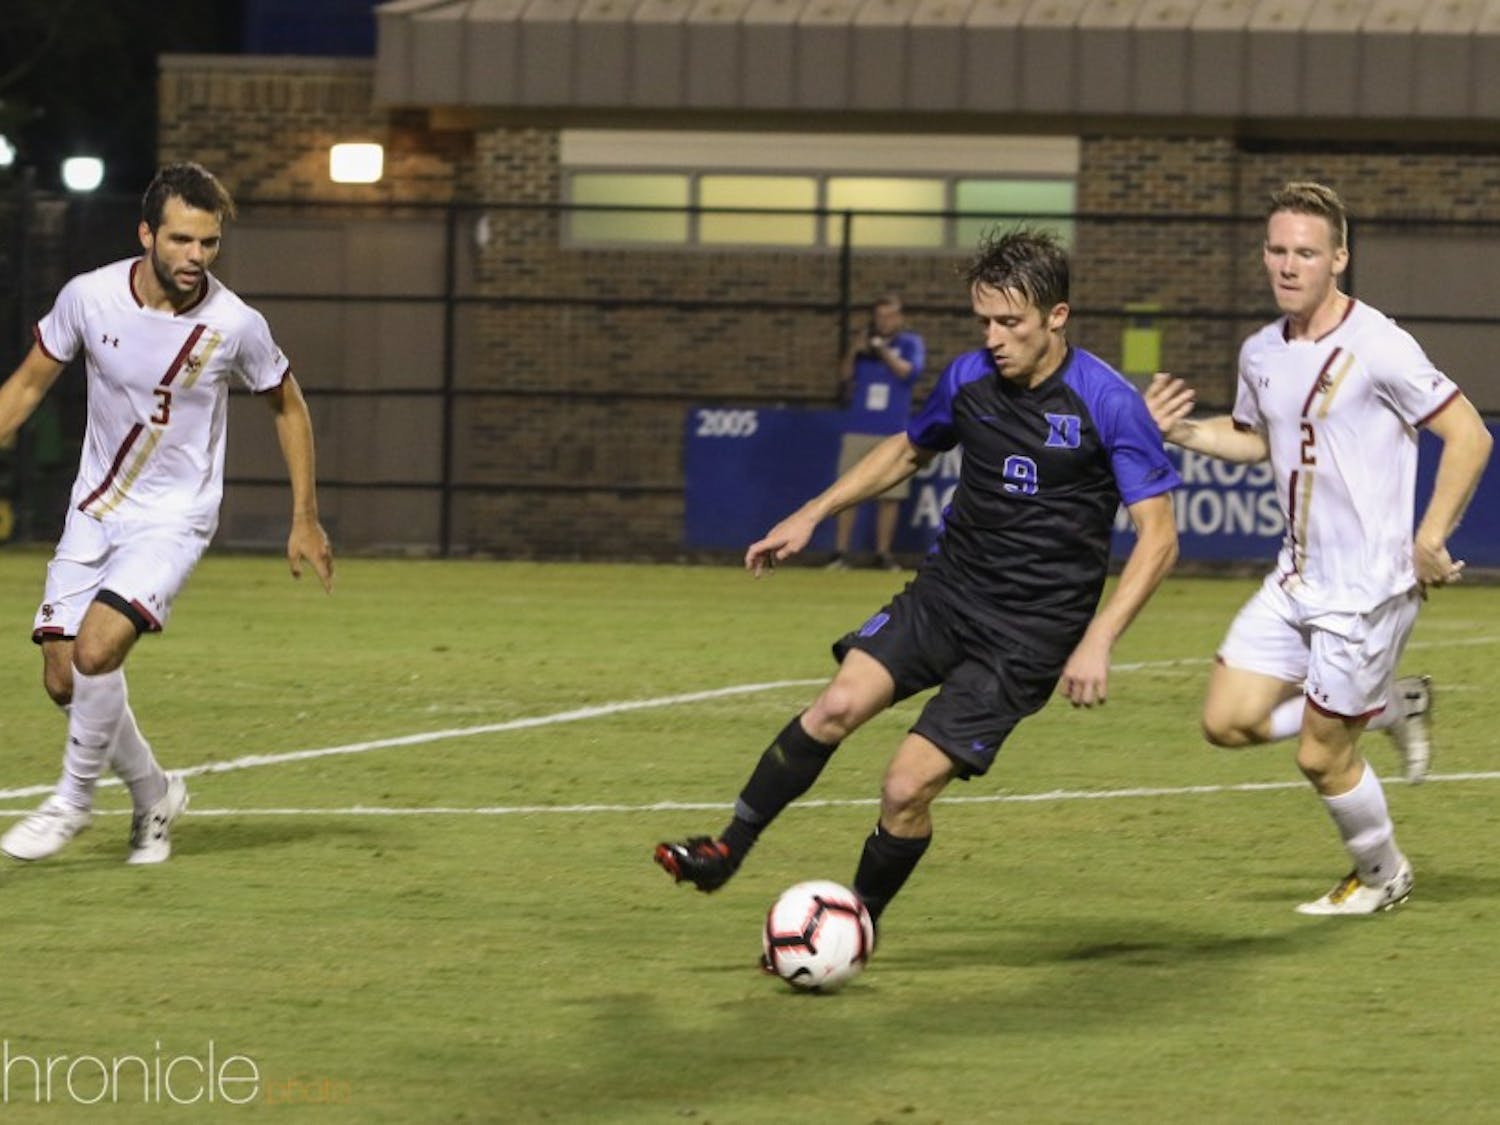 Daniele Proch will lead Duke's offense in its season opener against Furman in the John Rennie Nike Invitational.